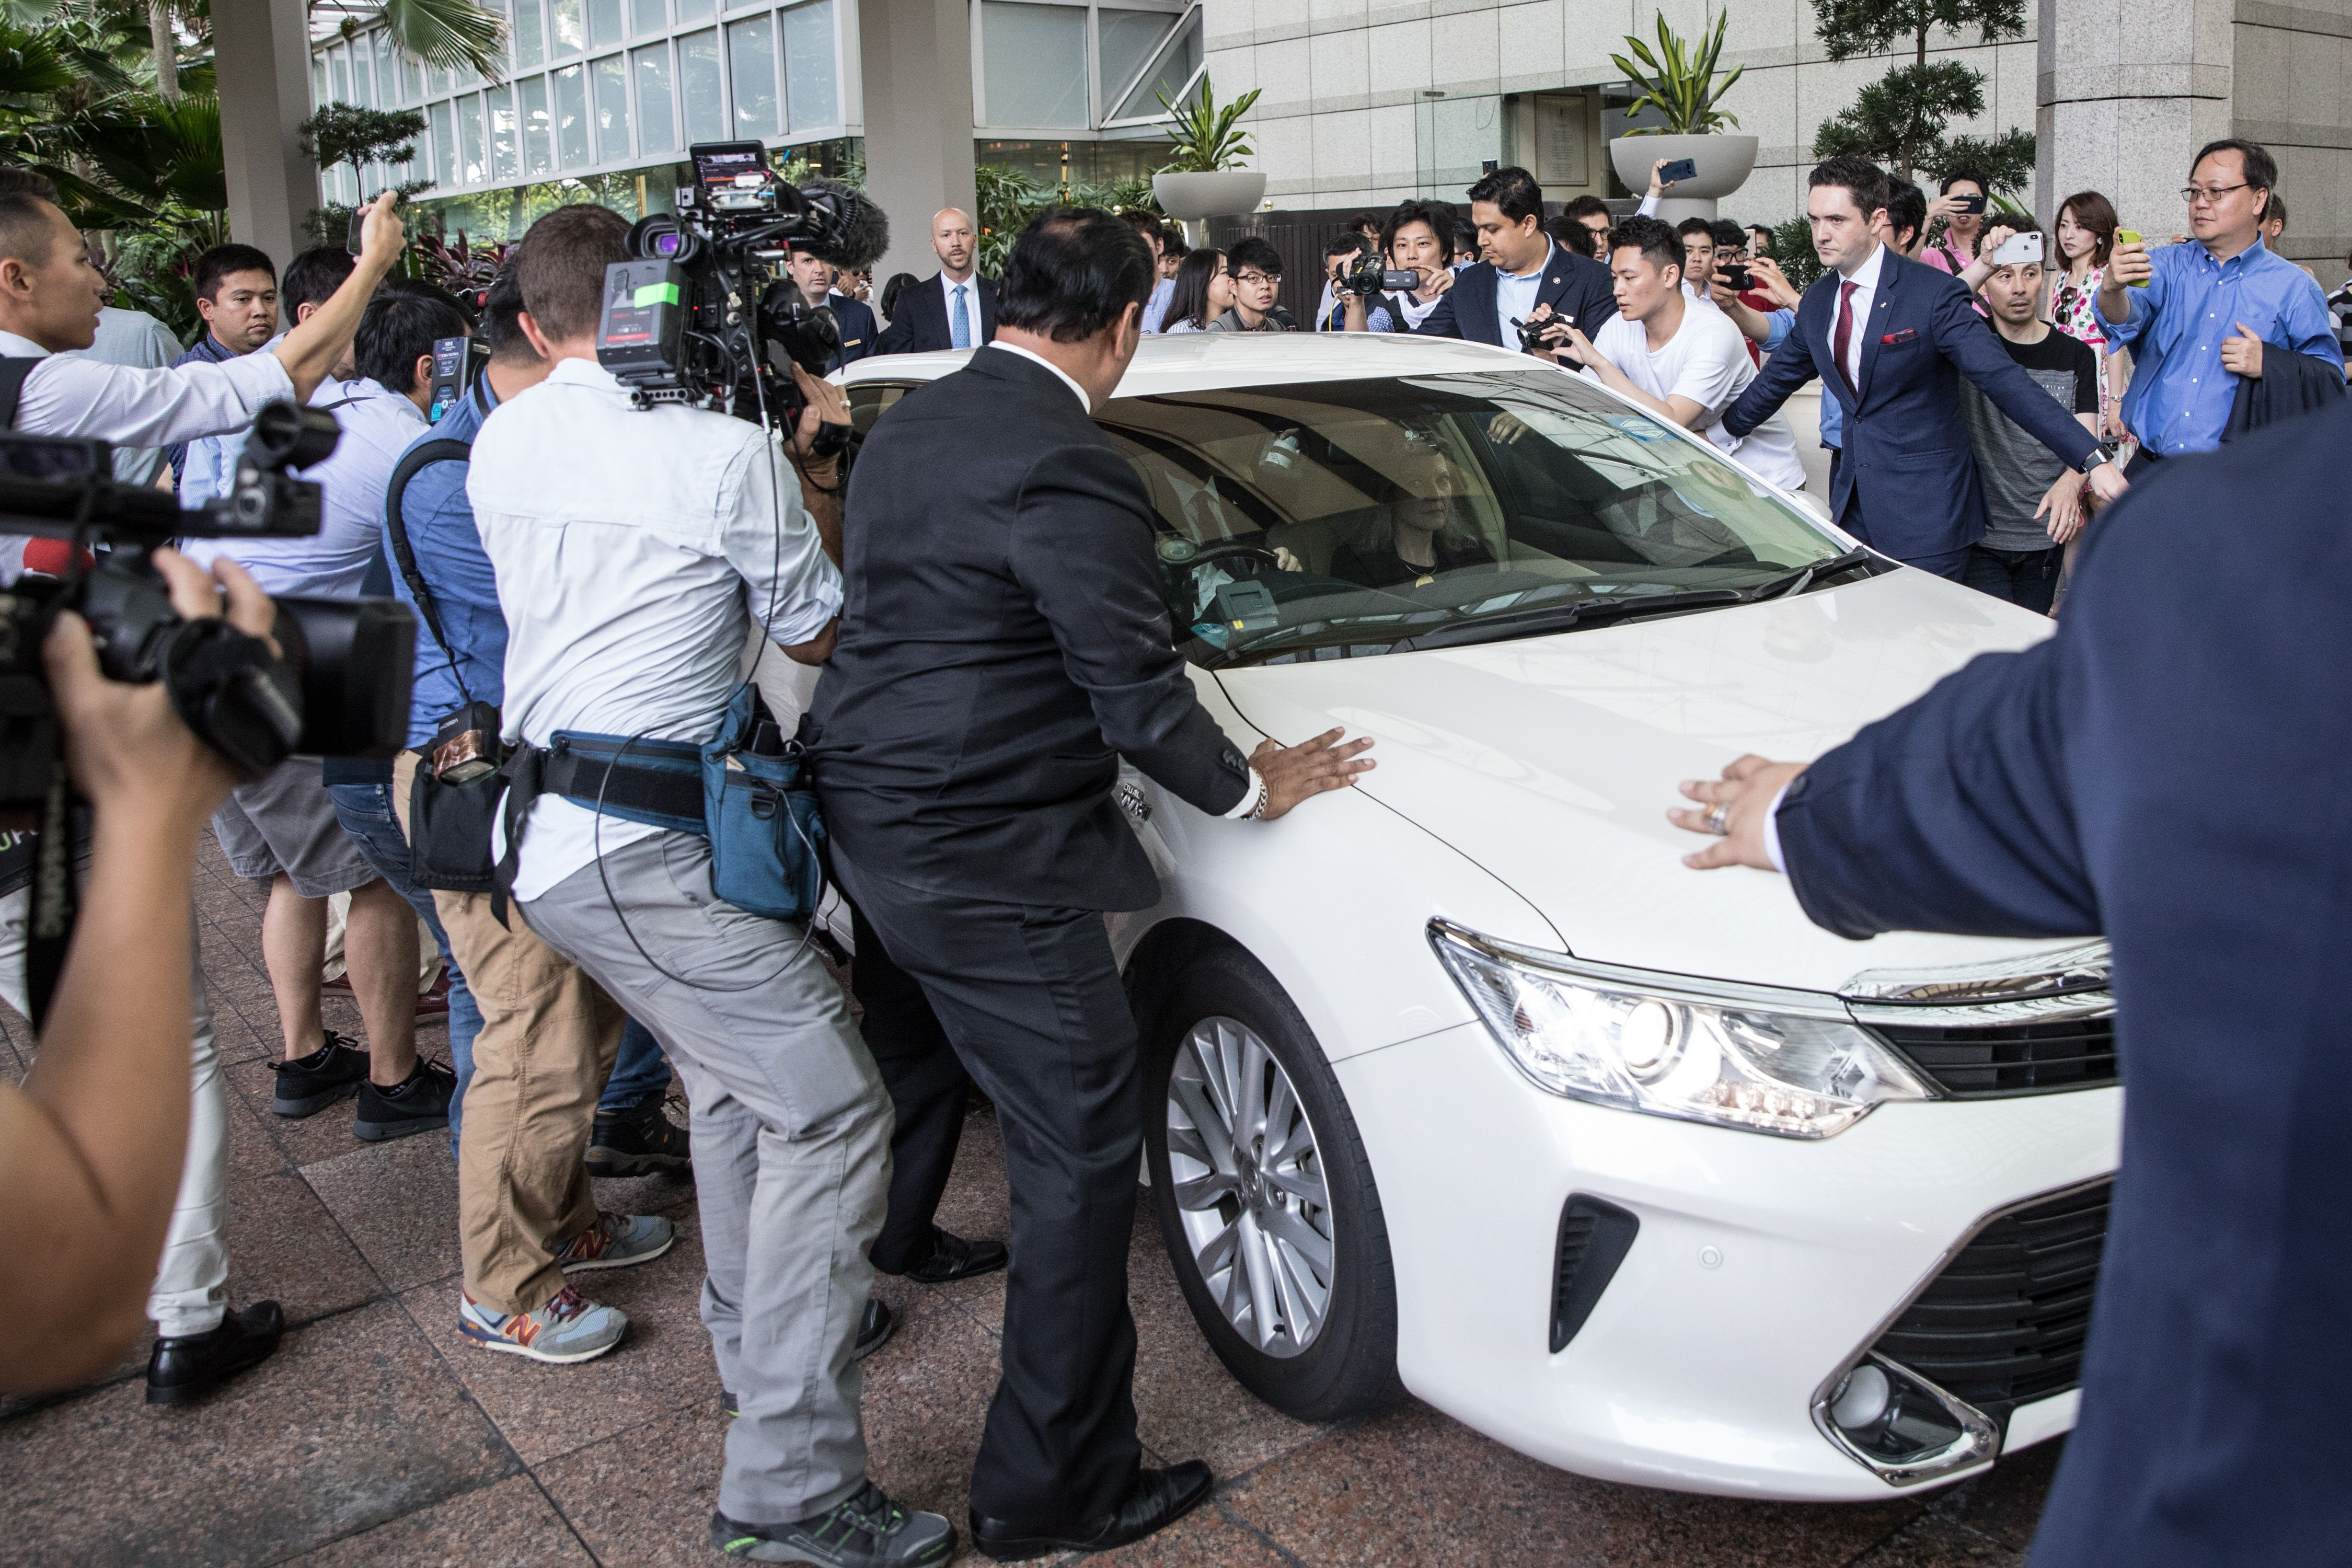 Security officers and press surround a limo in Singapore